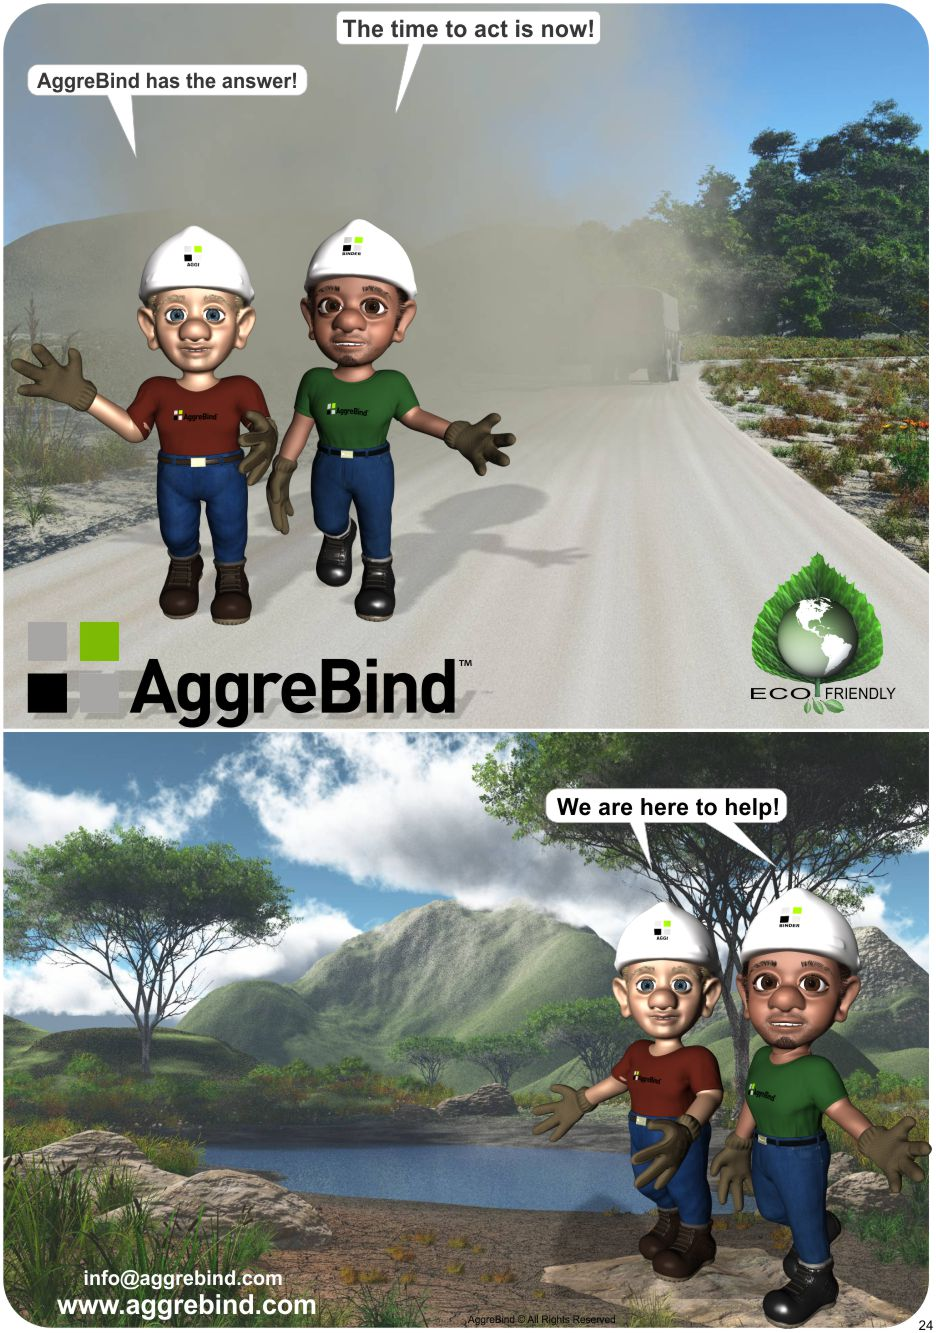 AggreBind product illustrated with Aggi and Binder